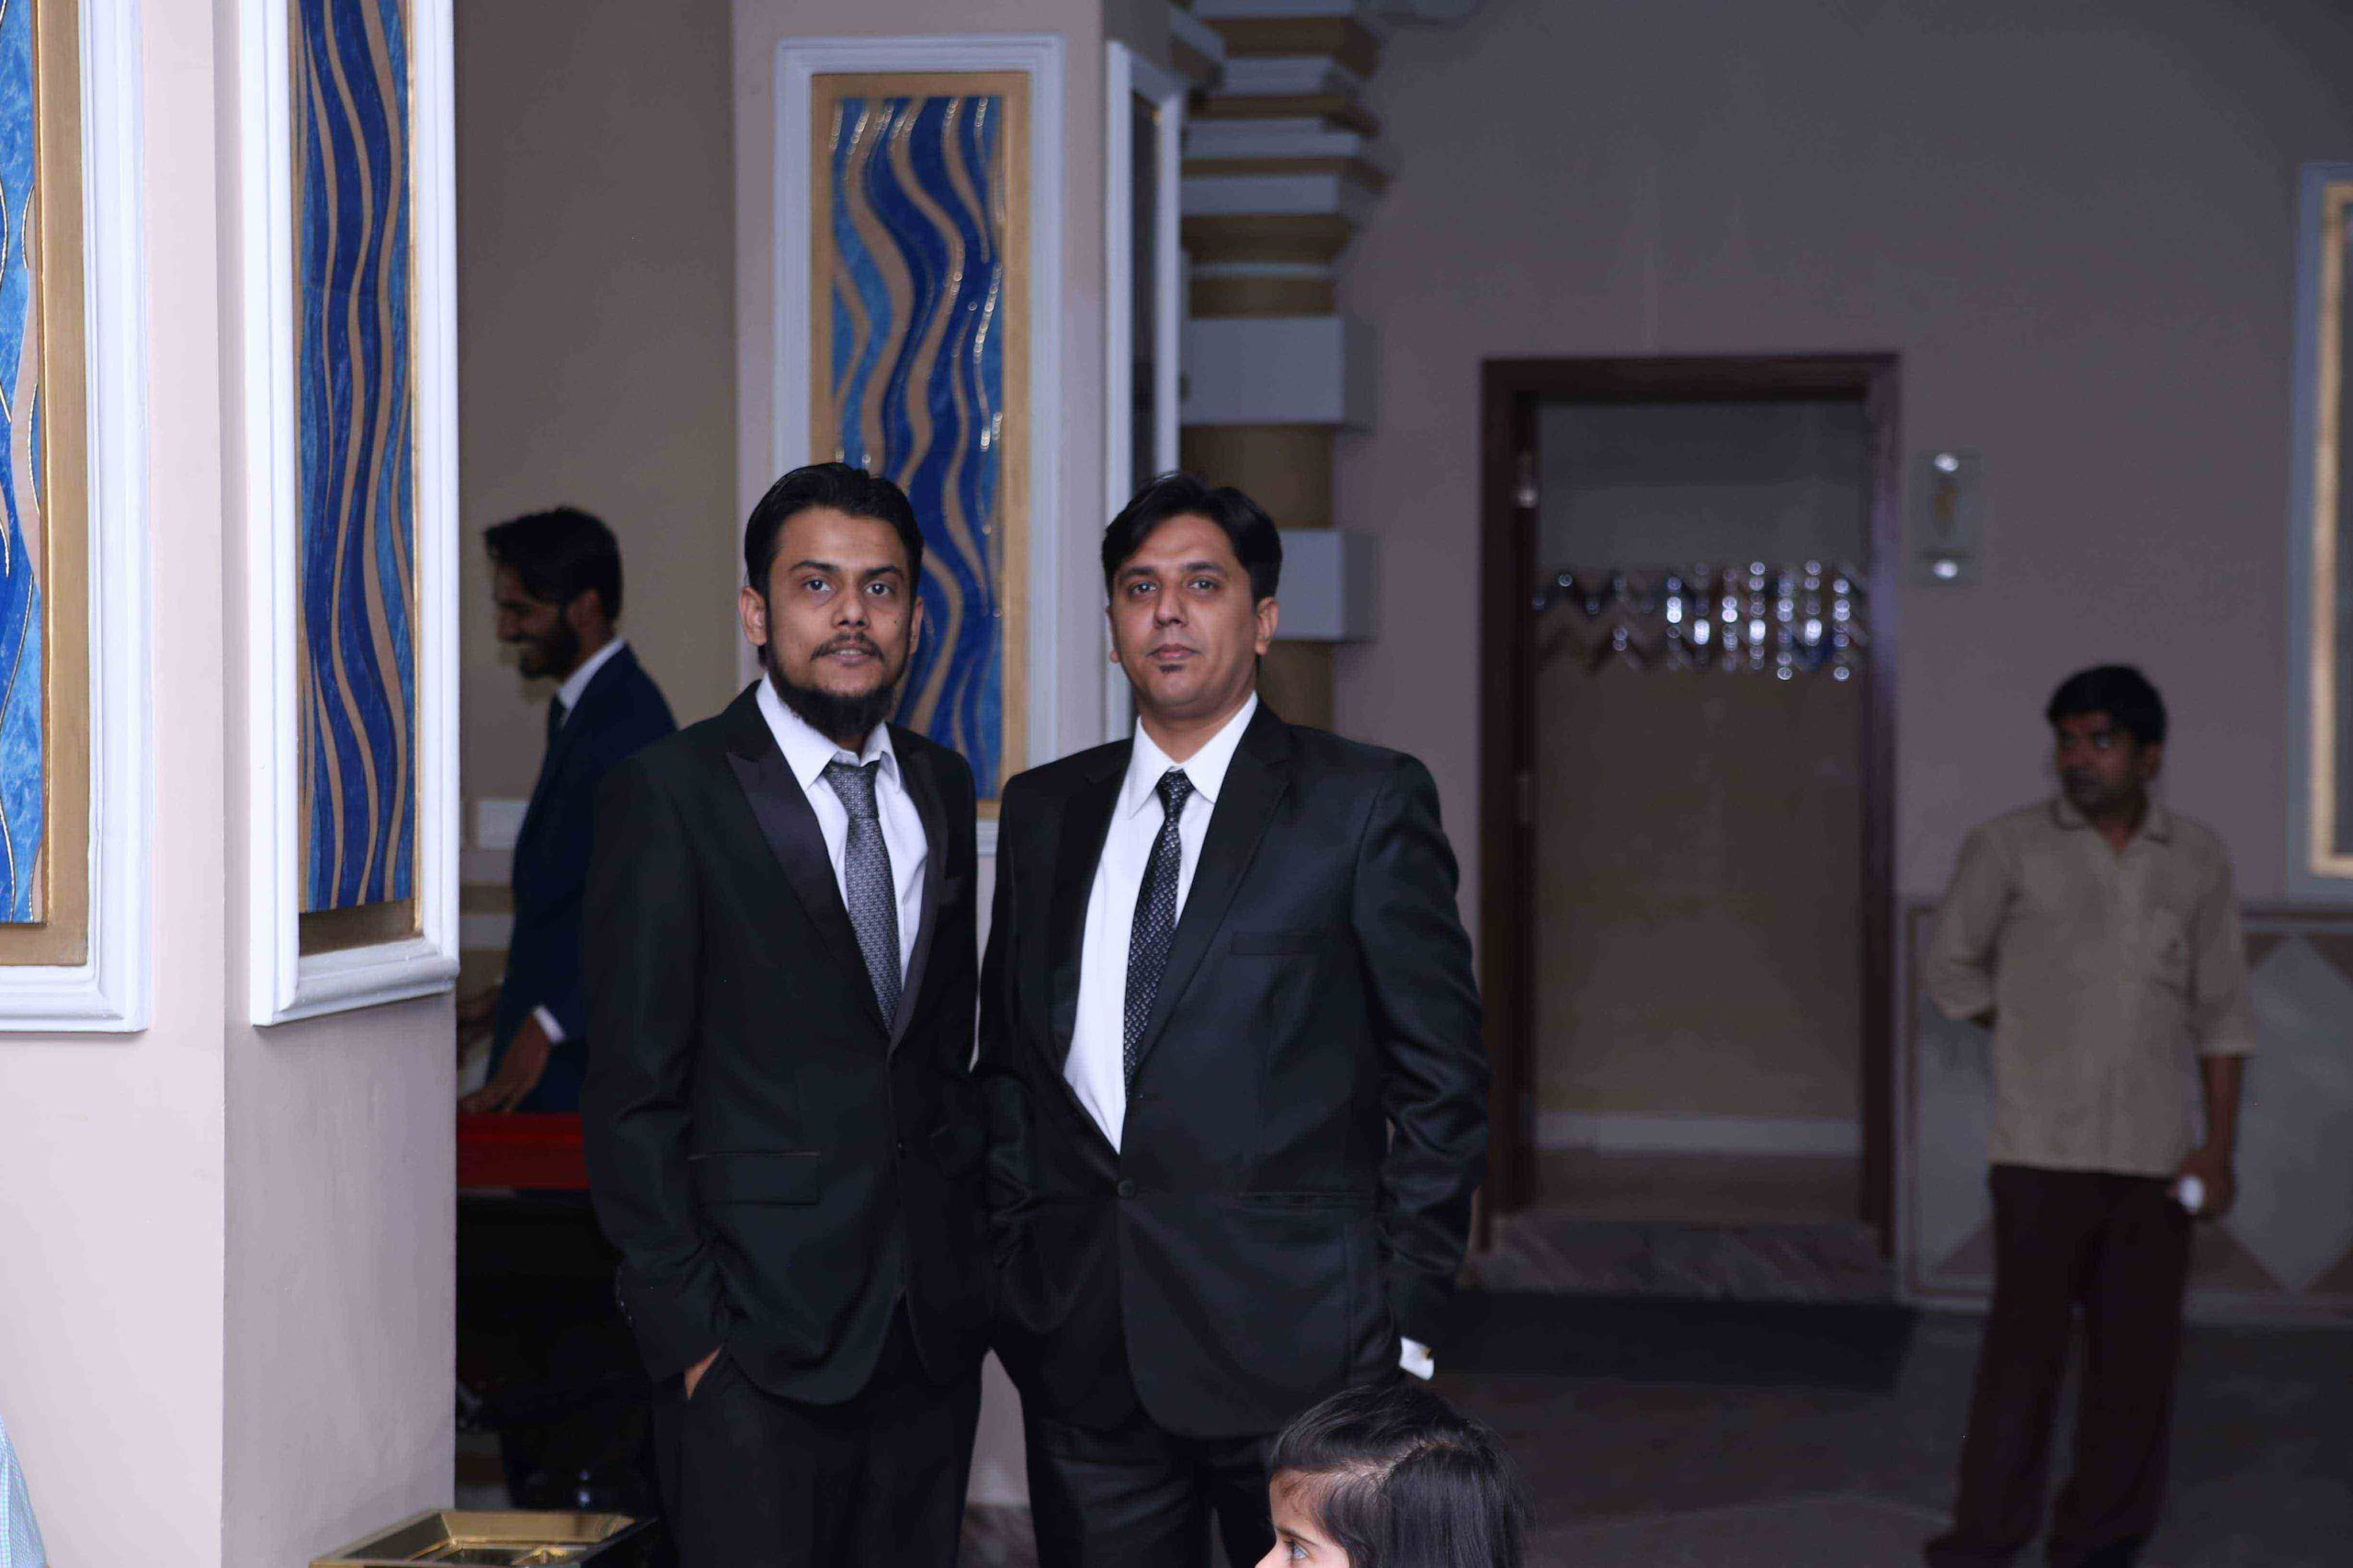 STAFF_ANNUAL_DINNER_&_IFTAR_PARTTY_1